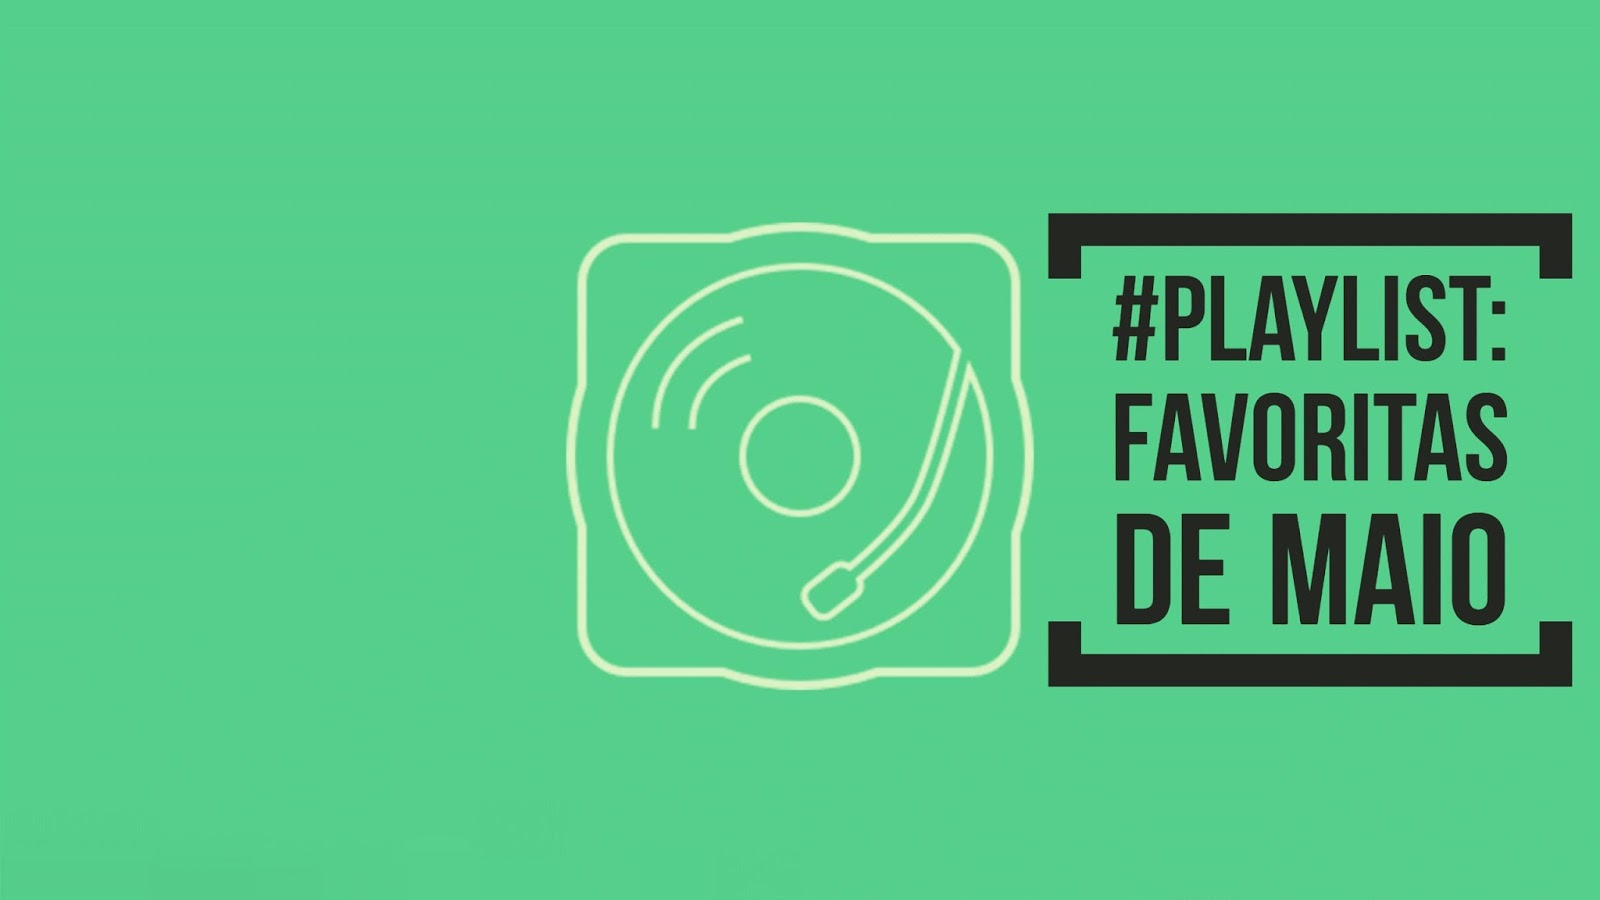 #PLAYLIST: Favoritas de Maio